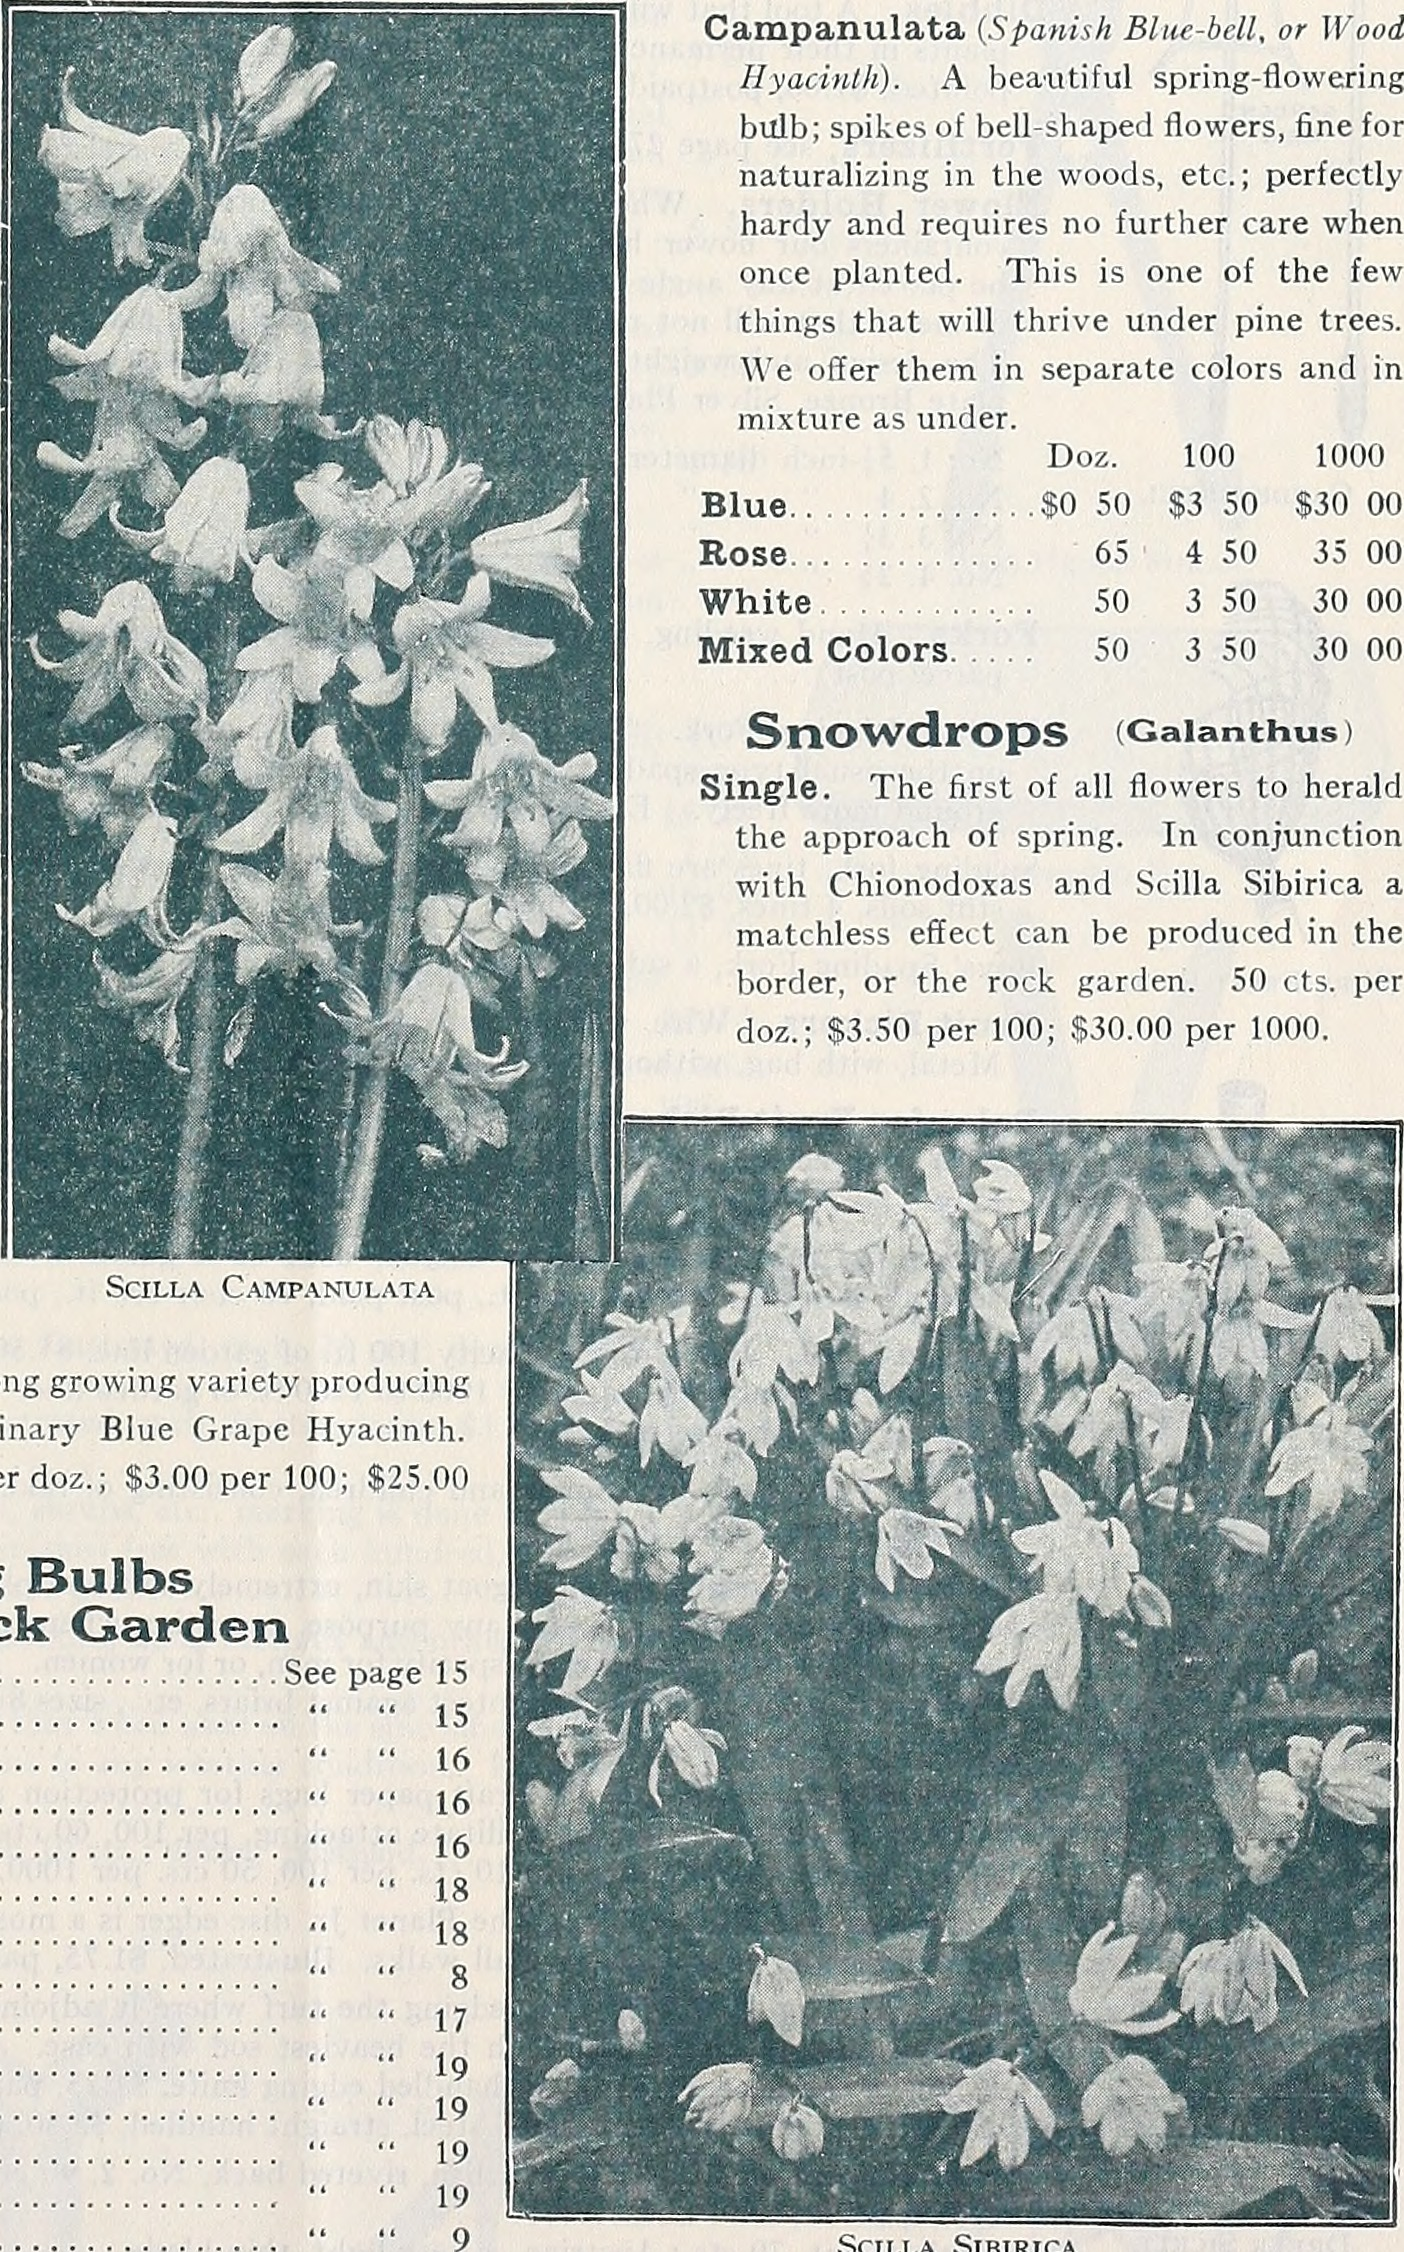 Filedreers Advance List Of Spring Flowering Bulbs 1932 1932